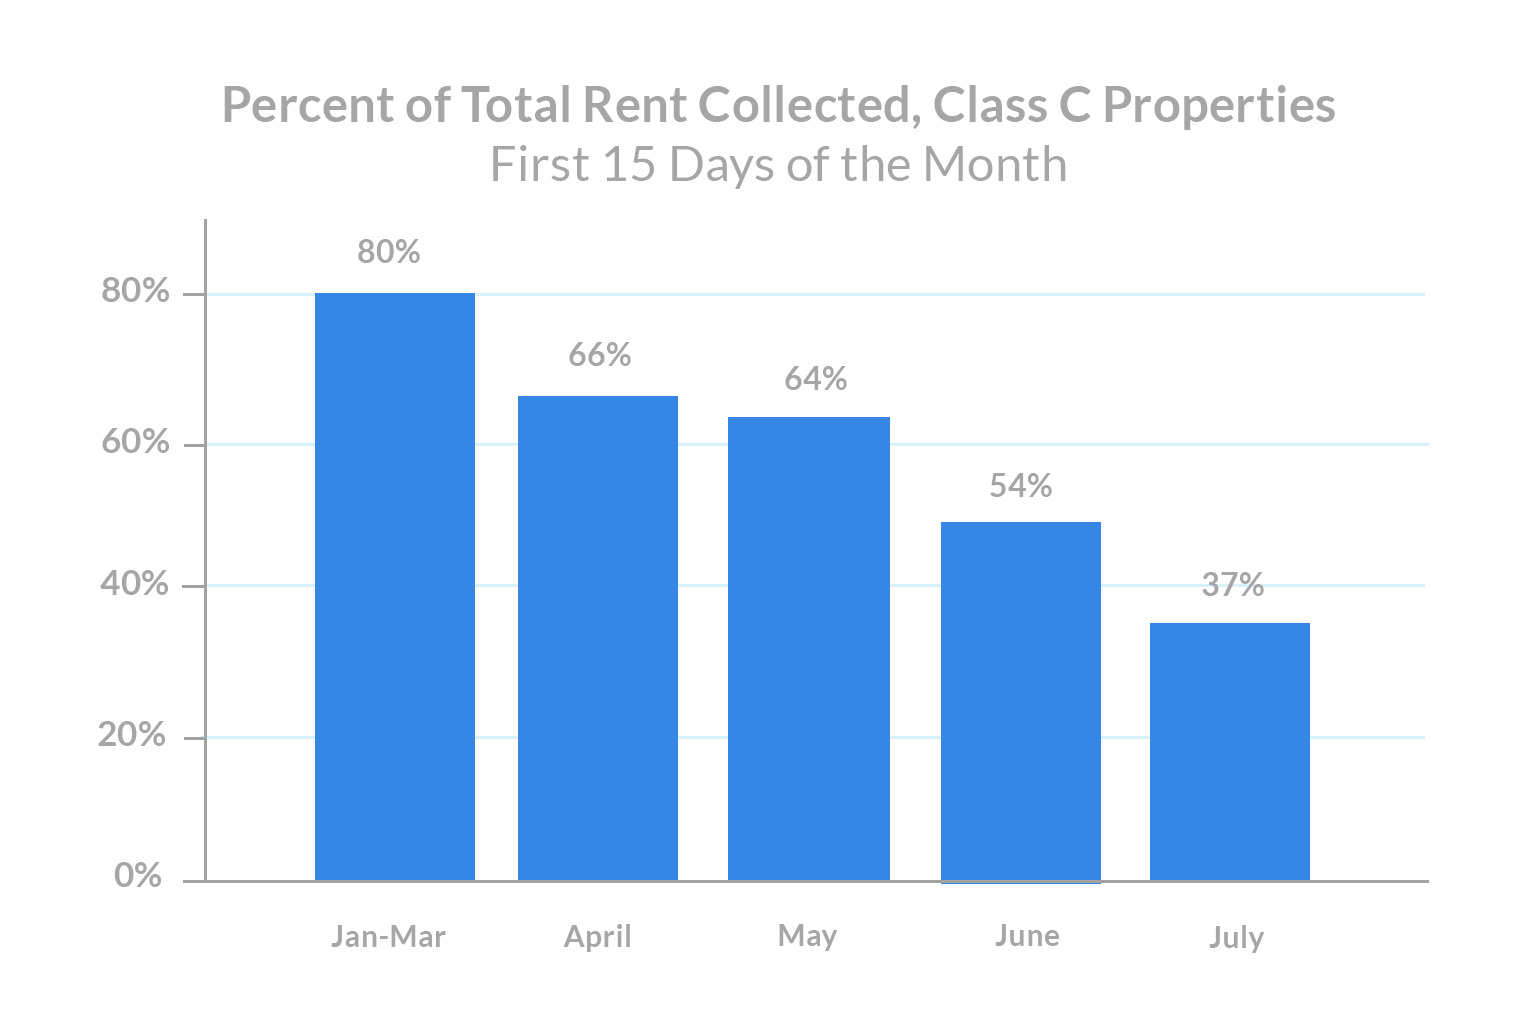 class-c-rent-payments-percent-of-total-rent-collected